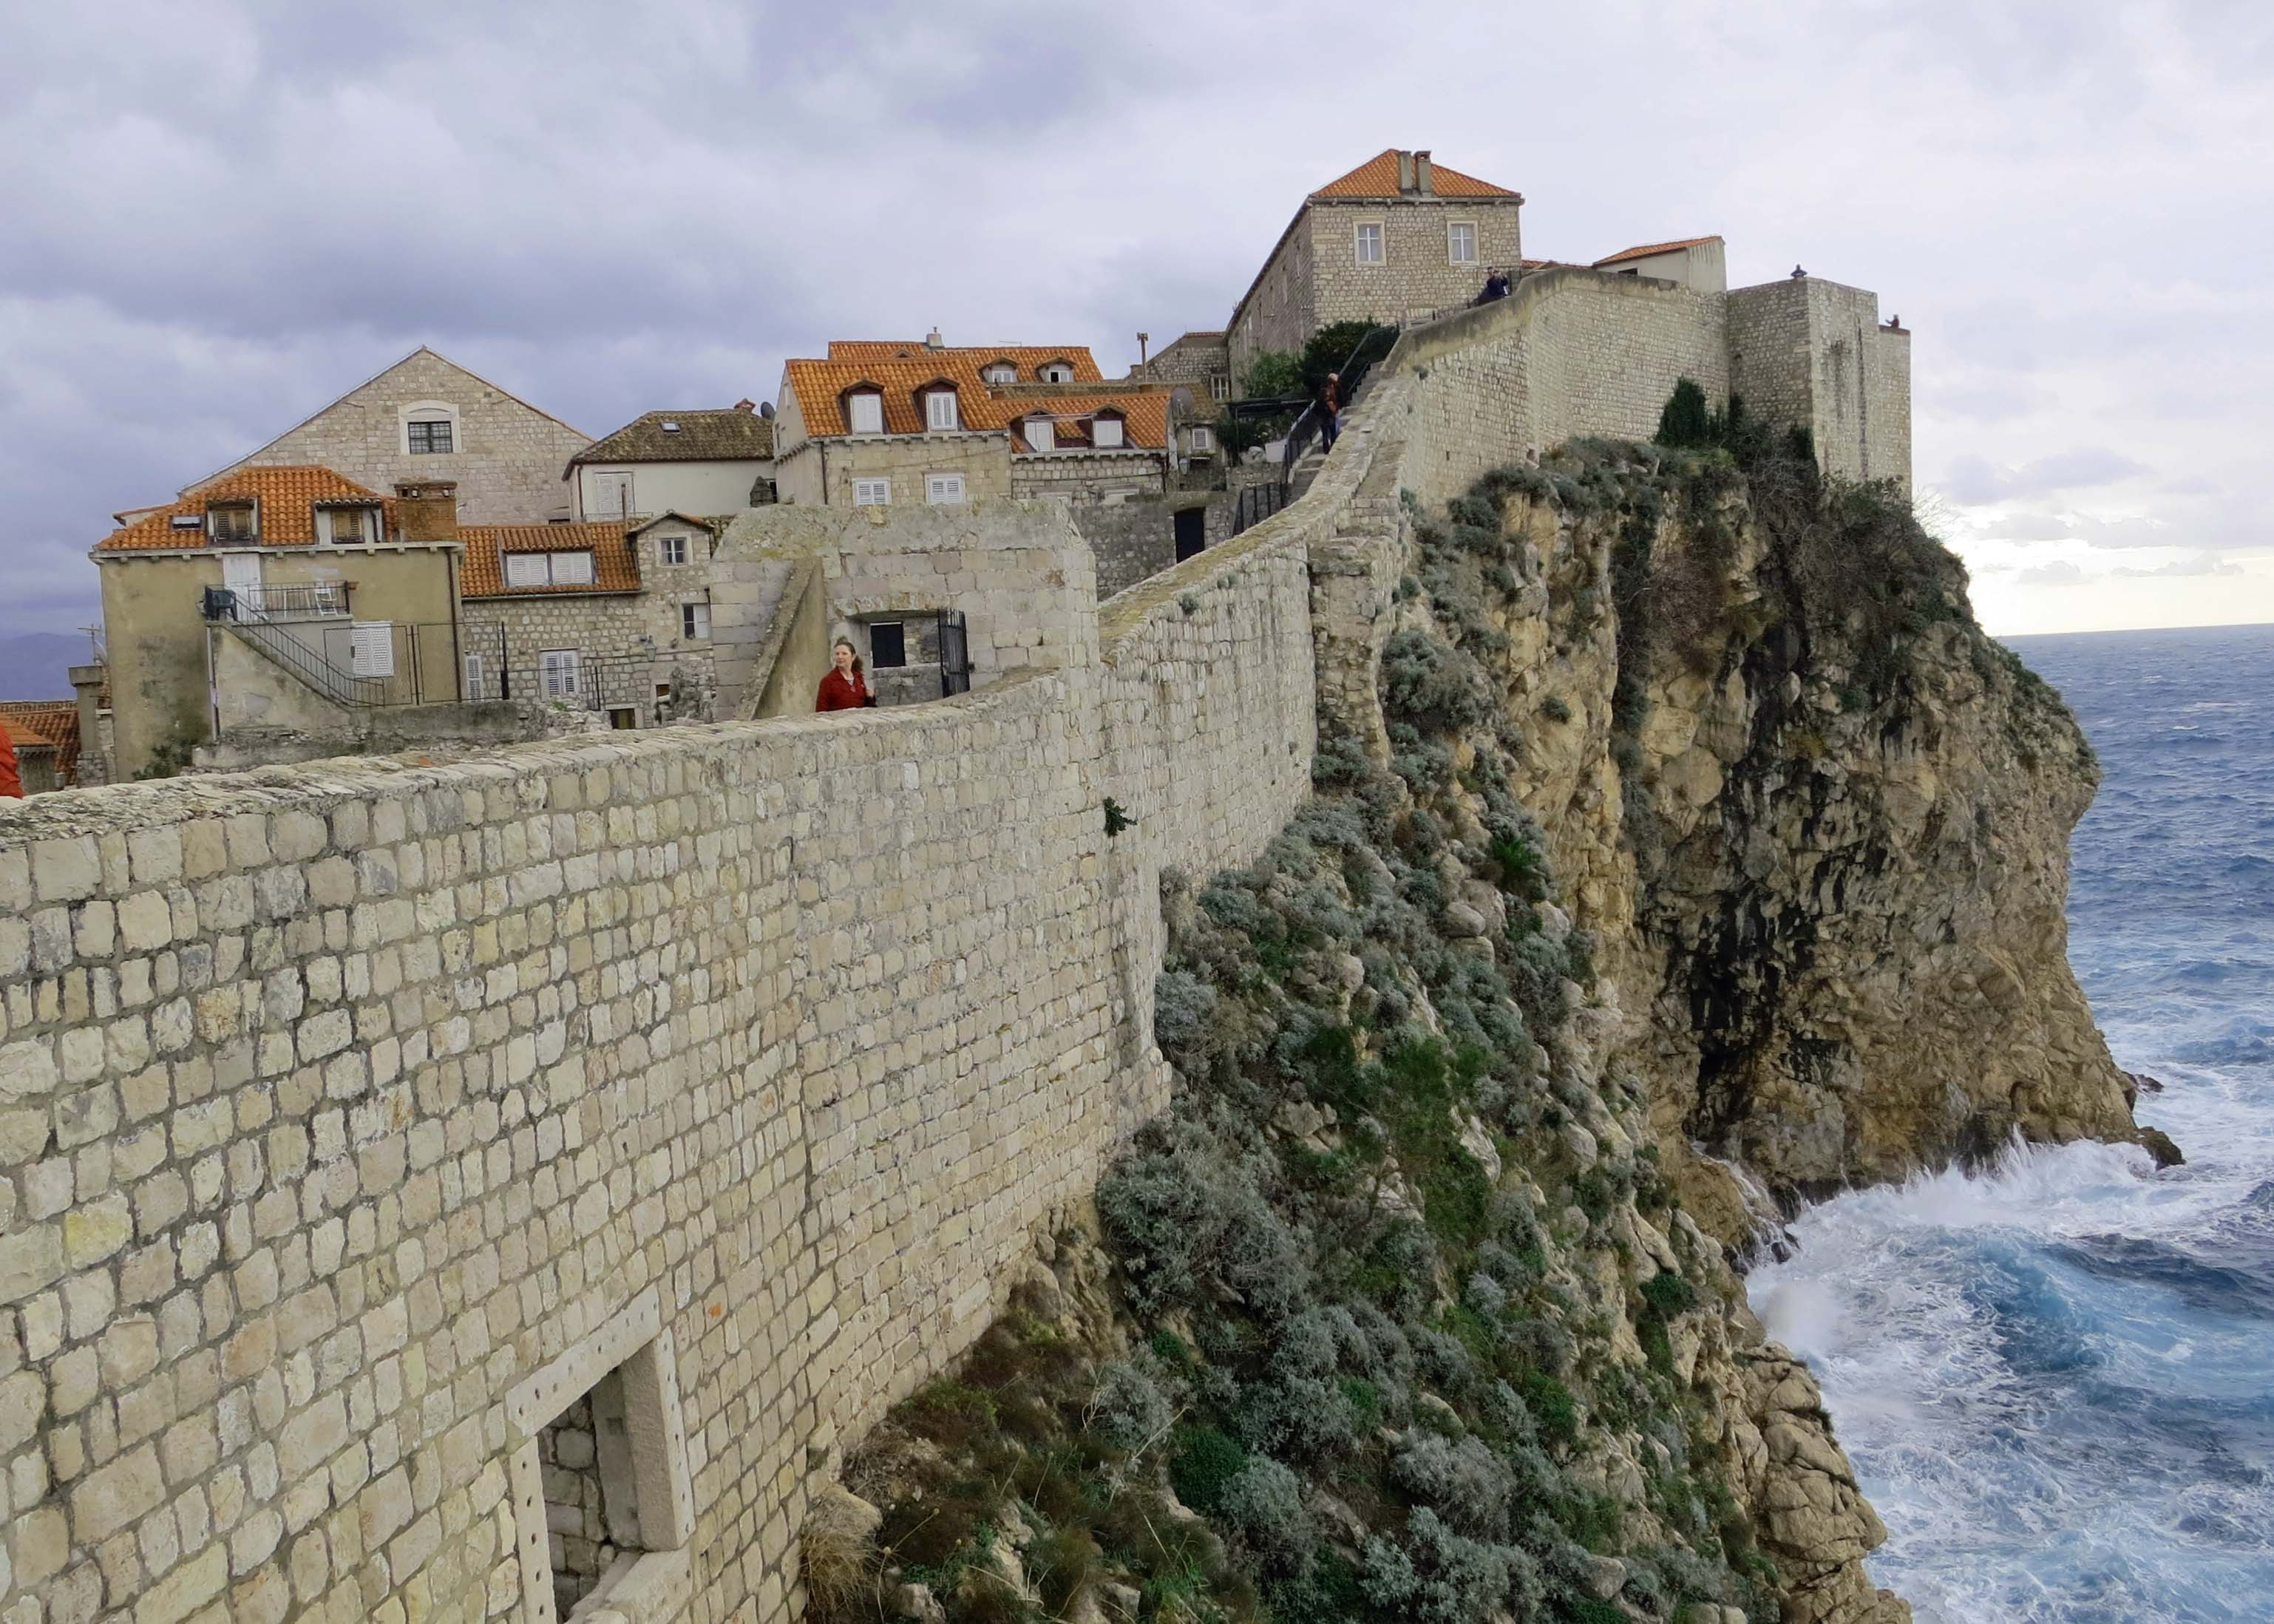 This photo provides a great perspective on why enemies would have thought twice... or maybe a dozen times, before attacking Dubrovnik.